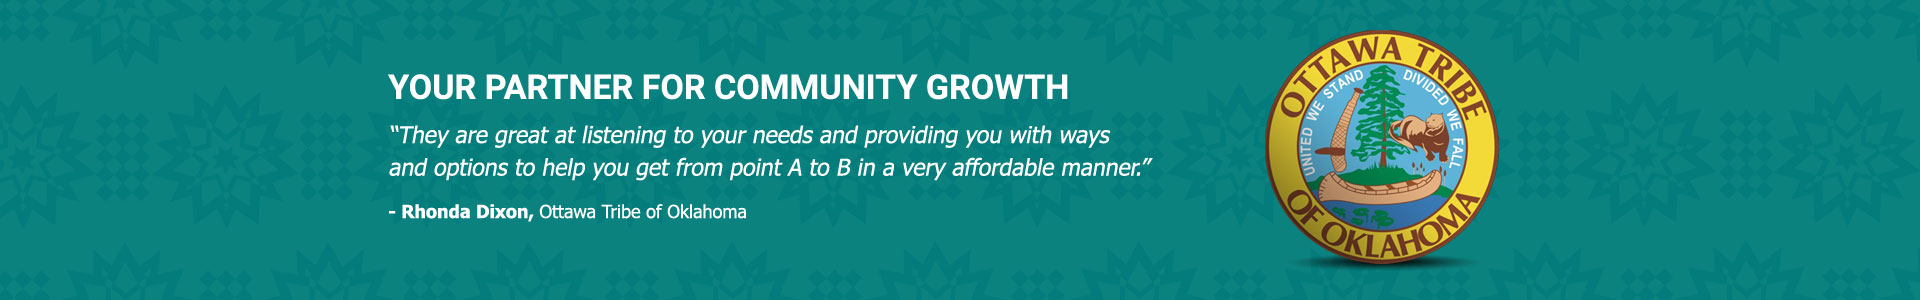 Your Partner For Community Growth